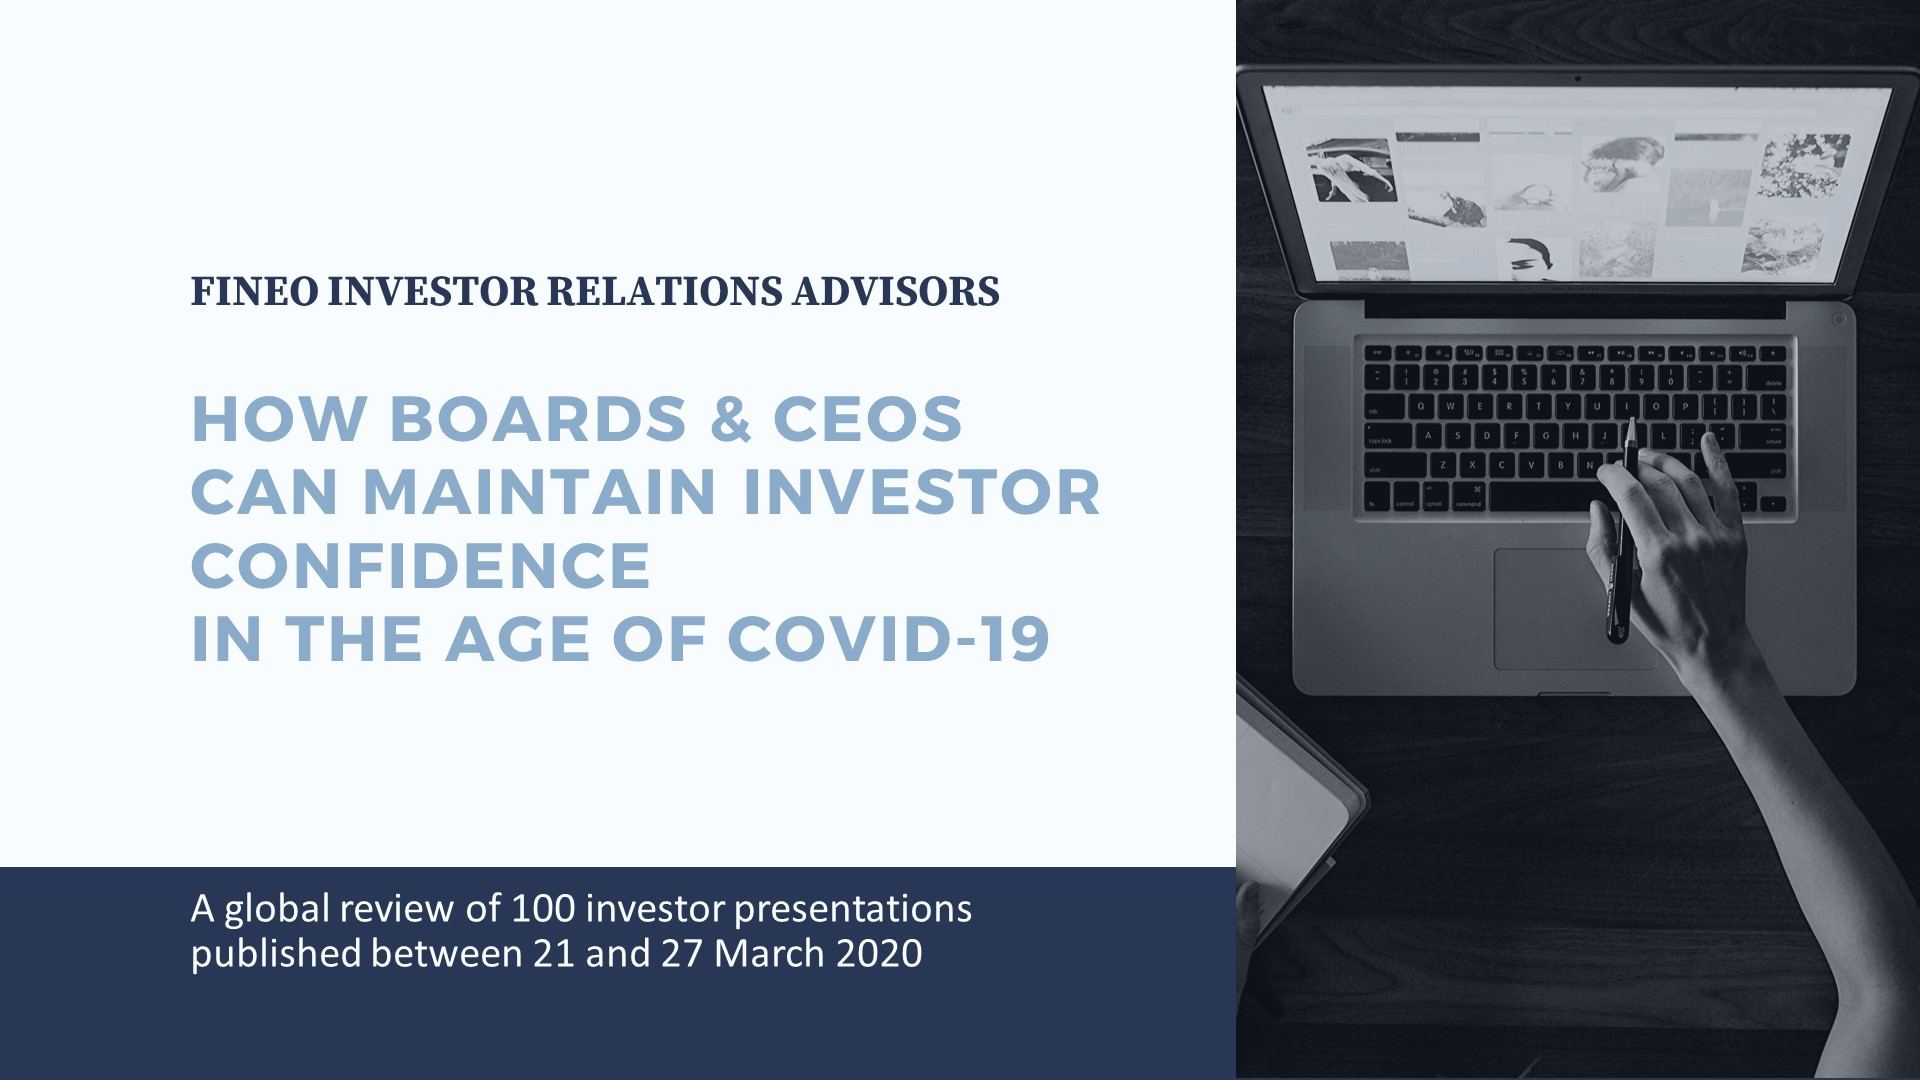 Maintaining investor confidence in the age of Covid-19